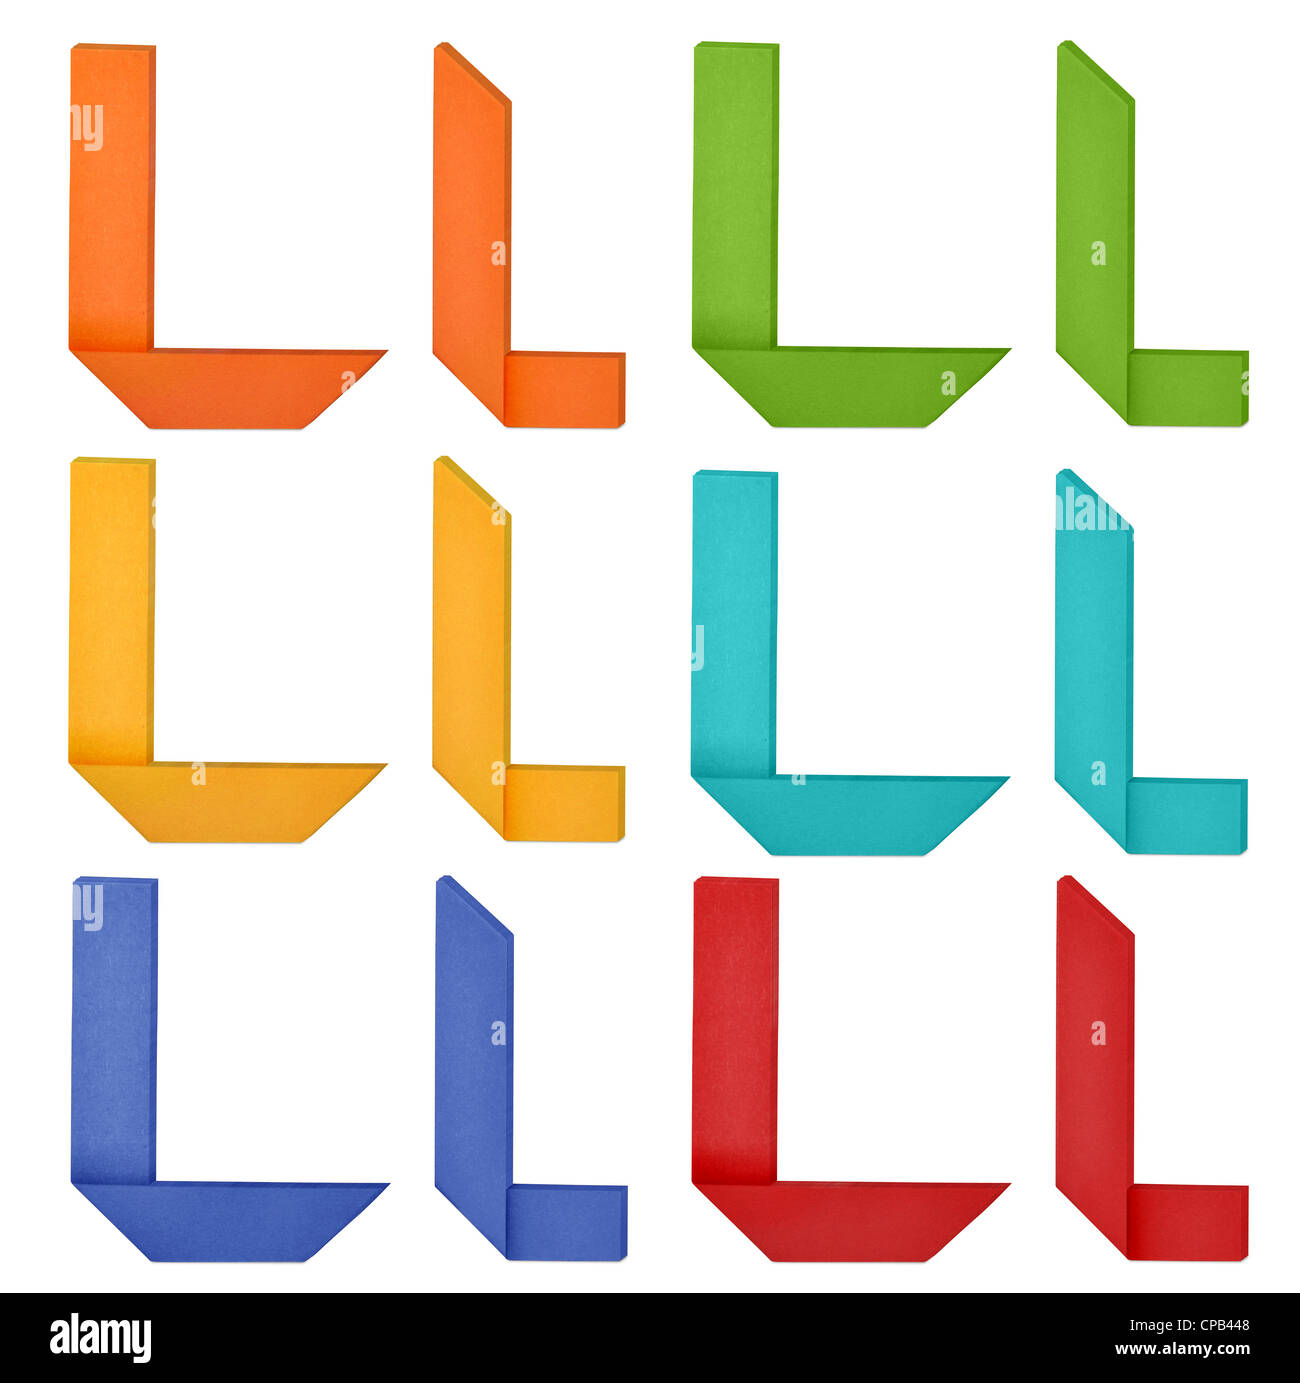 Set of capital letter and lowercase letter 'L' in various color. Origami alphabet letter on white background. - Stock Image